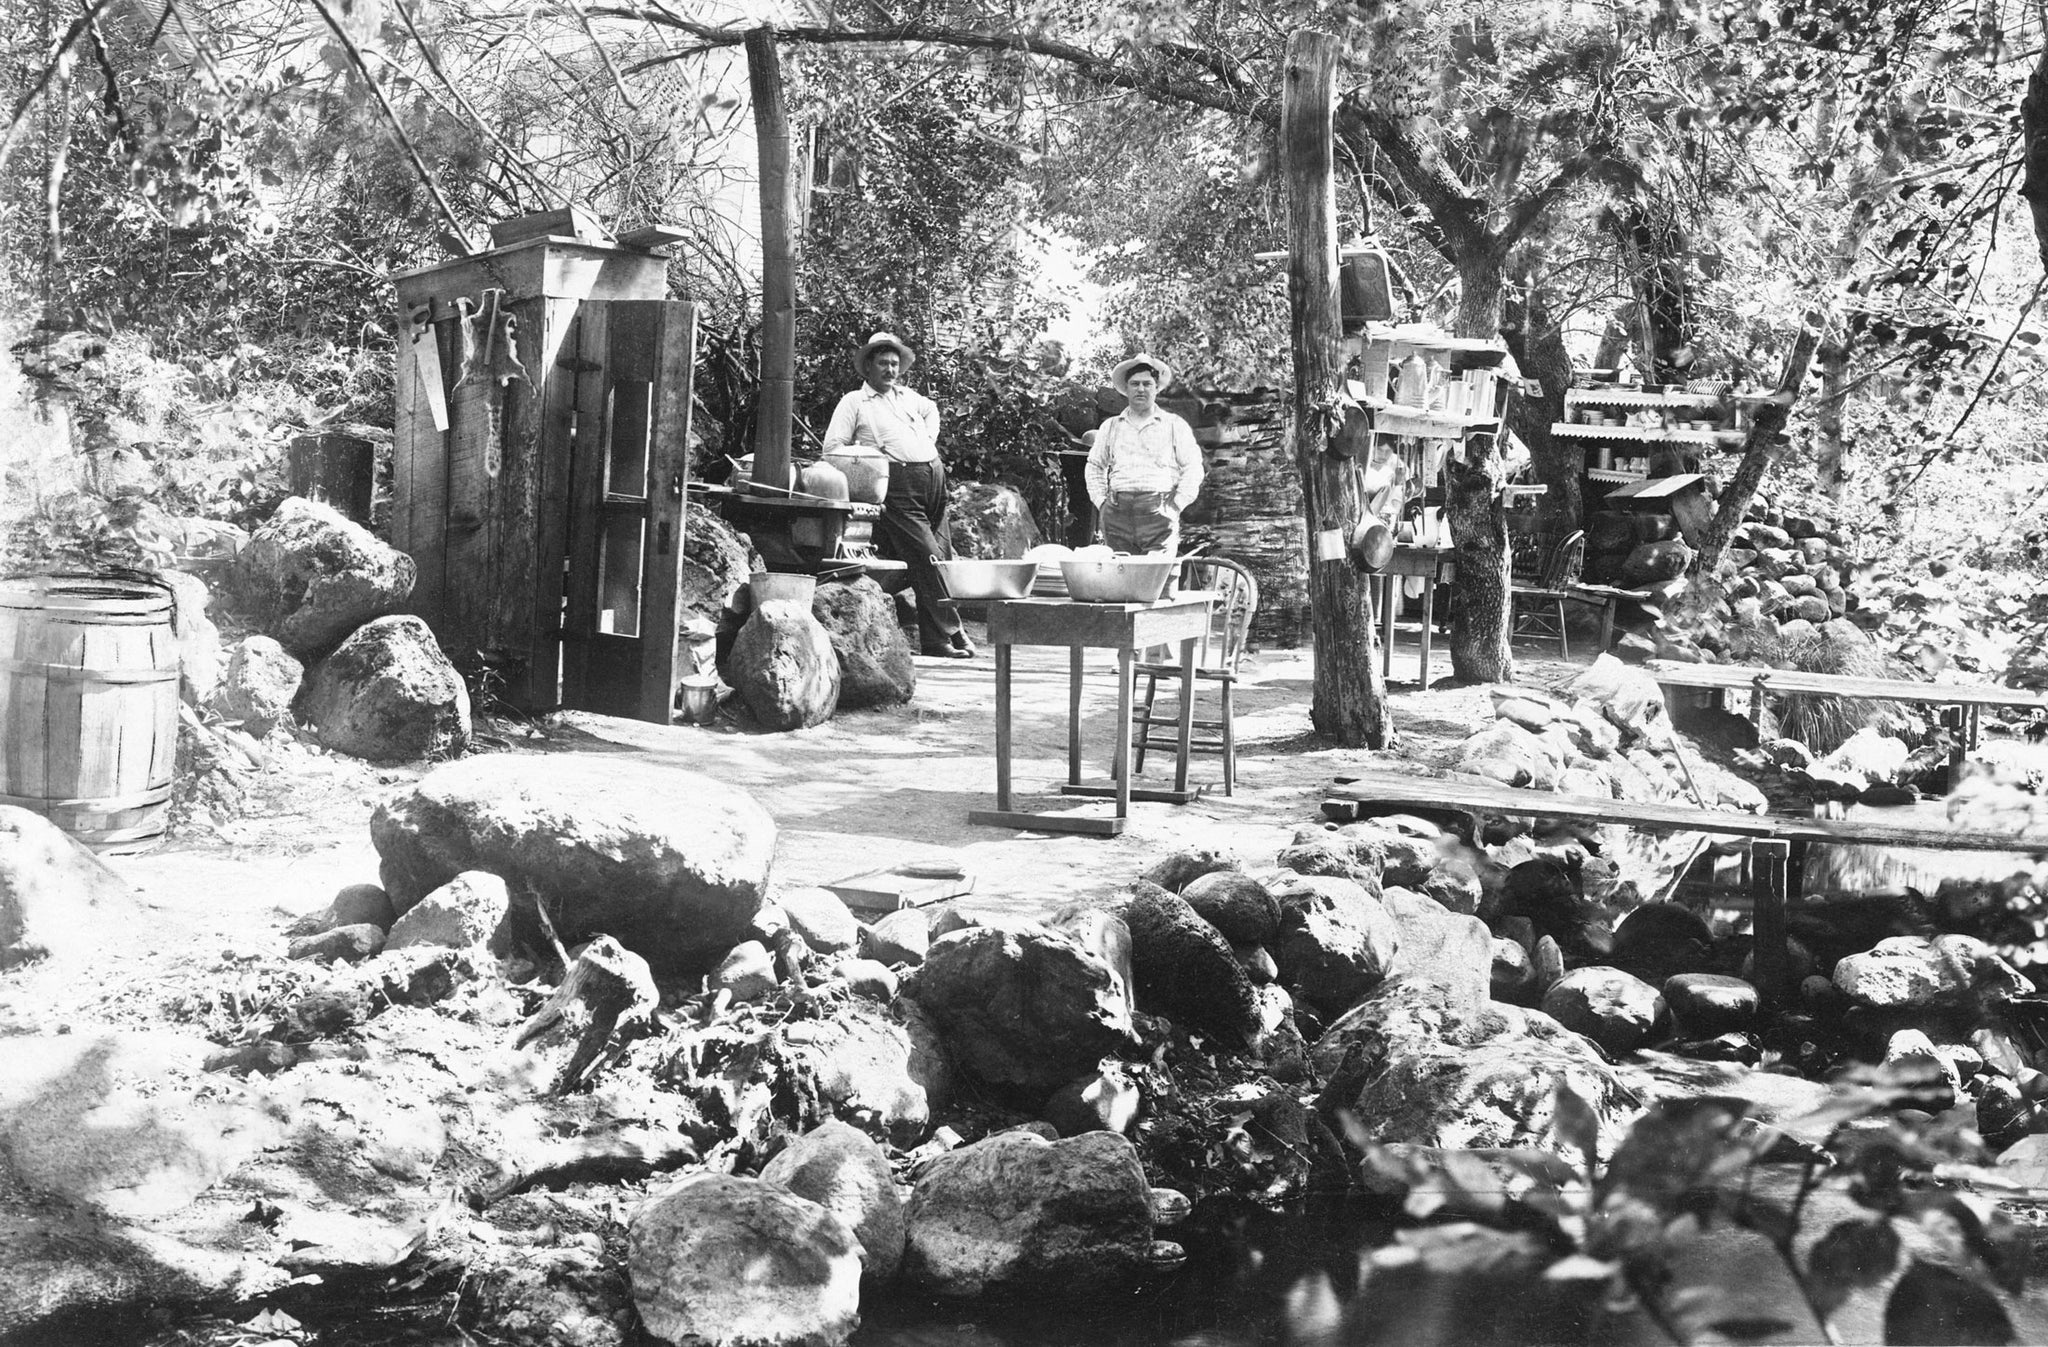 Campsite along Mud Creek in Richardson Springs resort, circa 1905. At Richardson Springs, guests had the option of staying in the Richardson Springs Hotel or camping. Later, cabins were also added to the resort. -- Courtesy Randy Taylor Collection